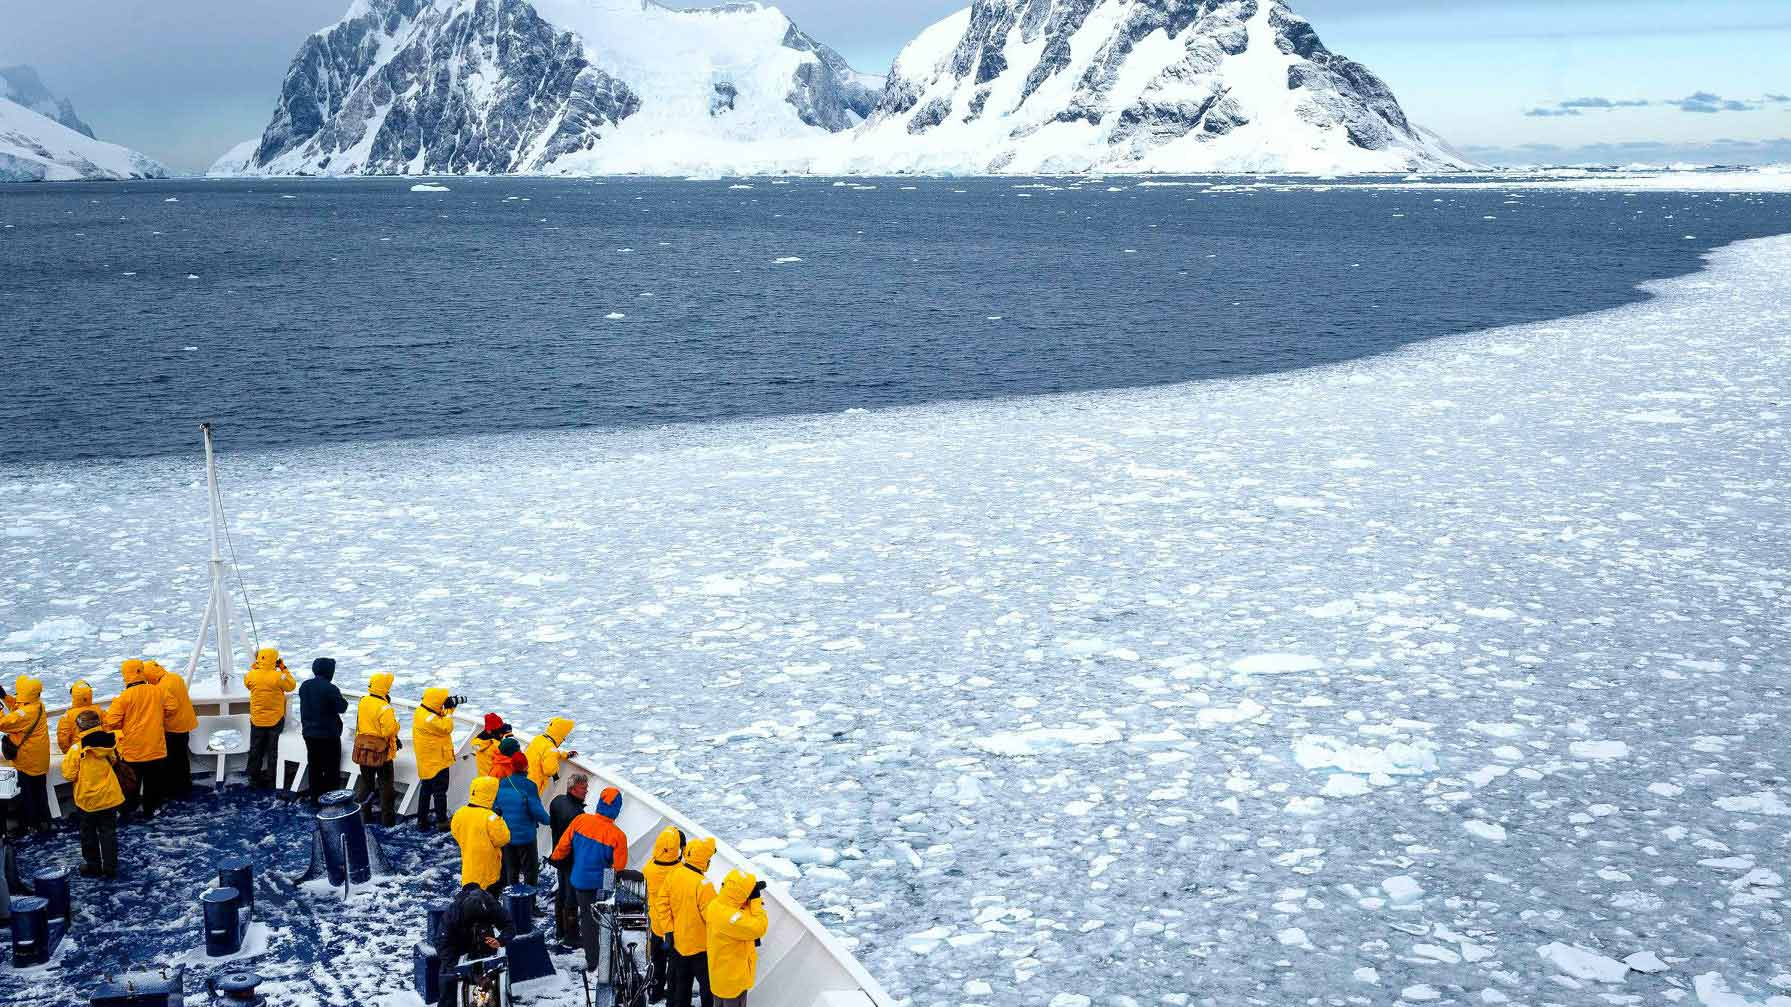 View of Icebergs in Antarctica with people watching the view from cruise ship.